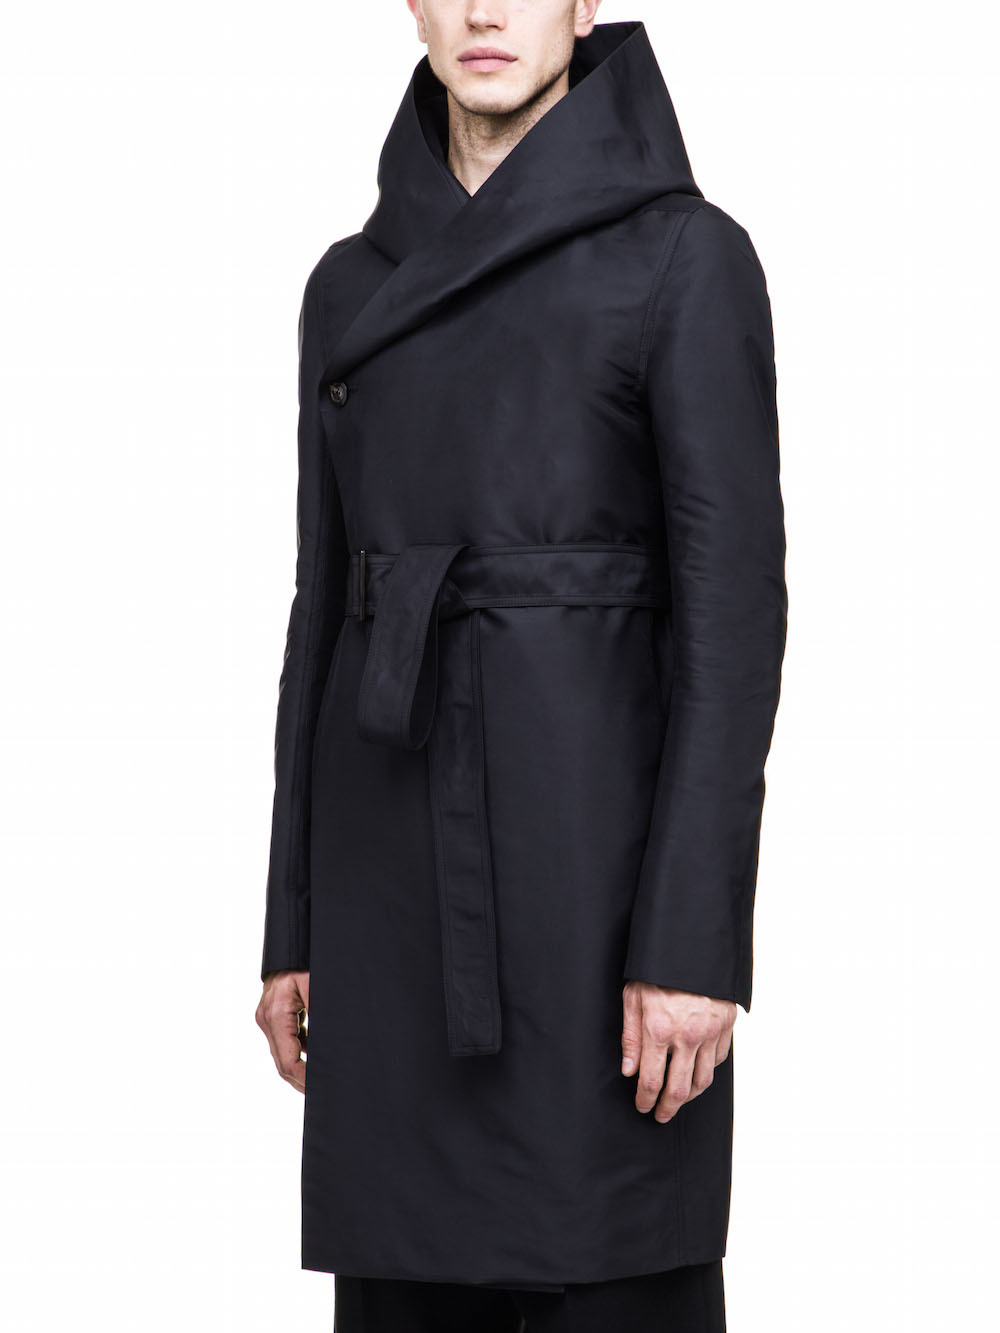 RICK OWENS HOODED TRENCH IN BLACK TECH